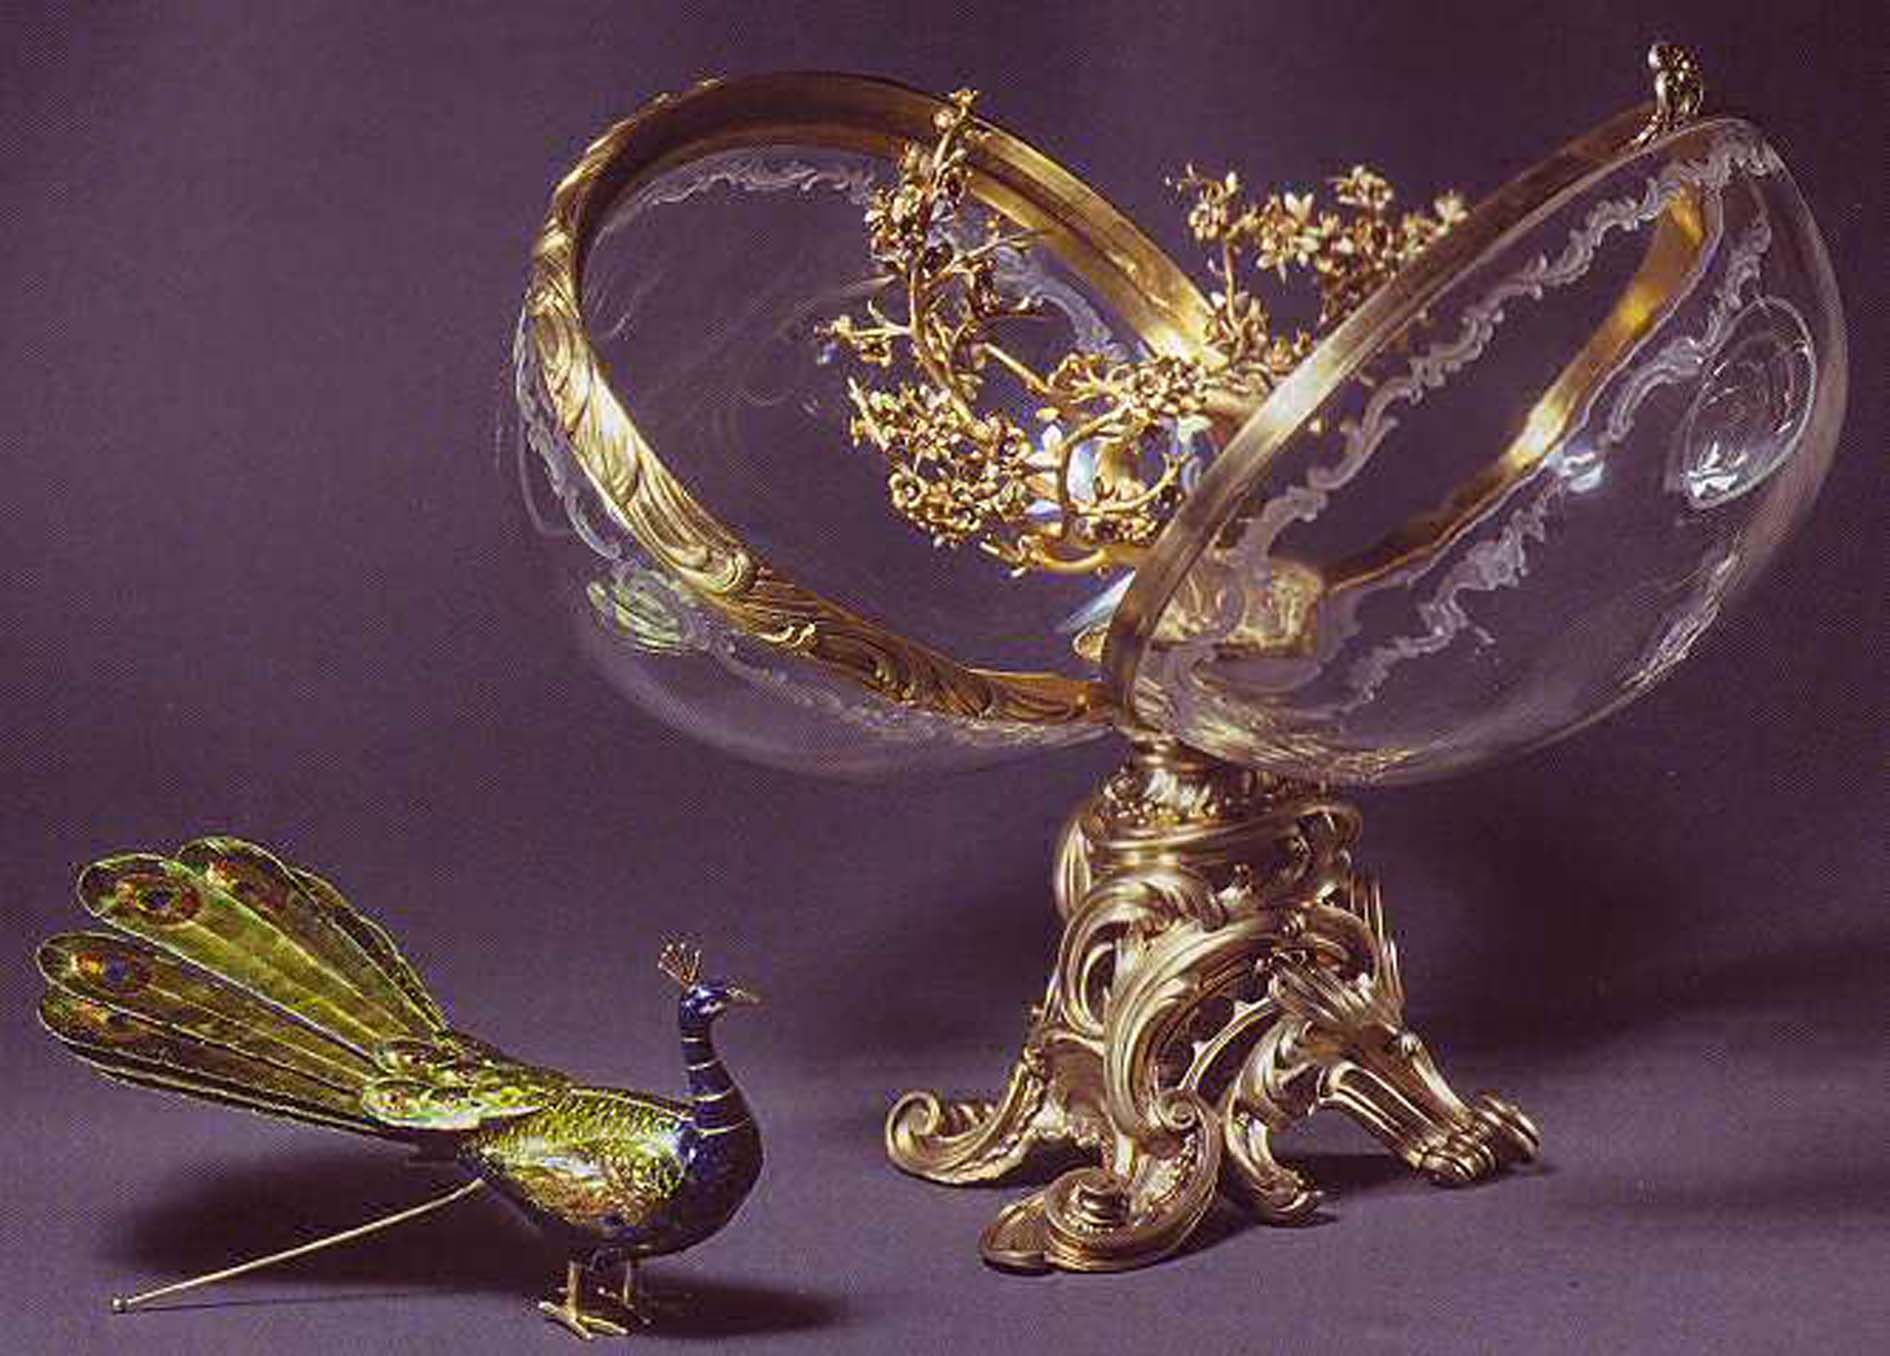 Faberge egg egg and russian art peter carl faberg imperial egg negle Gallery